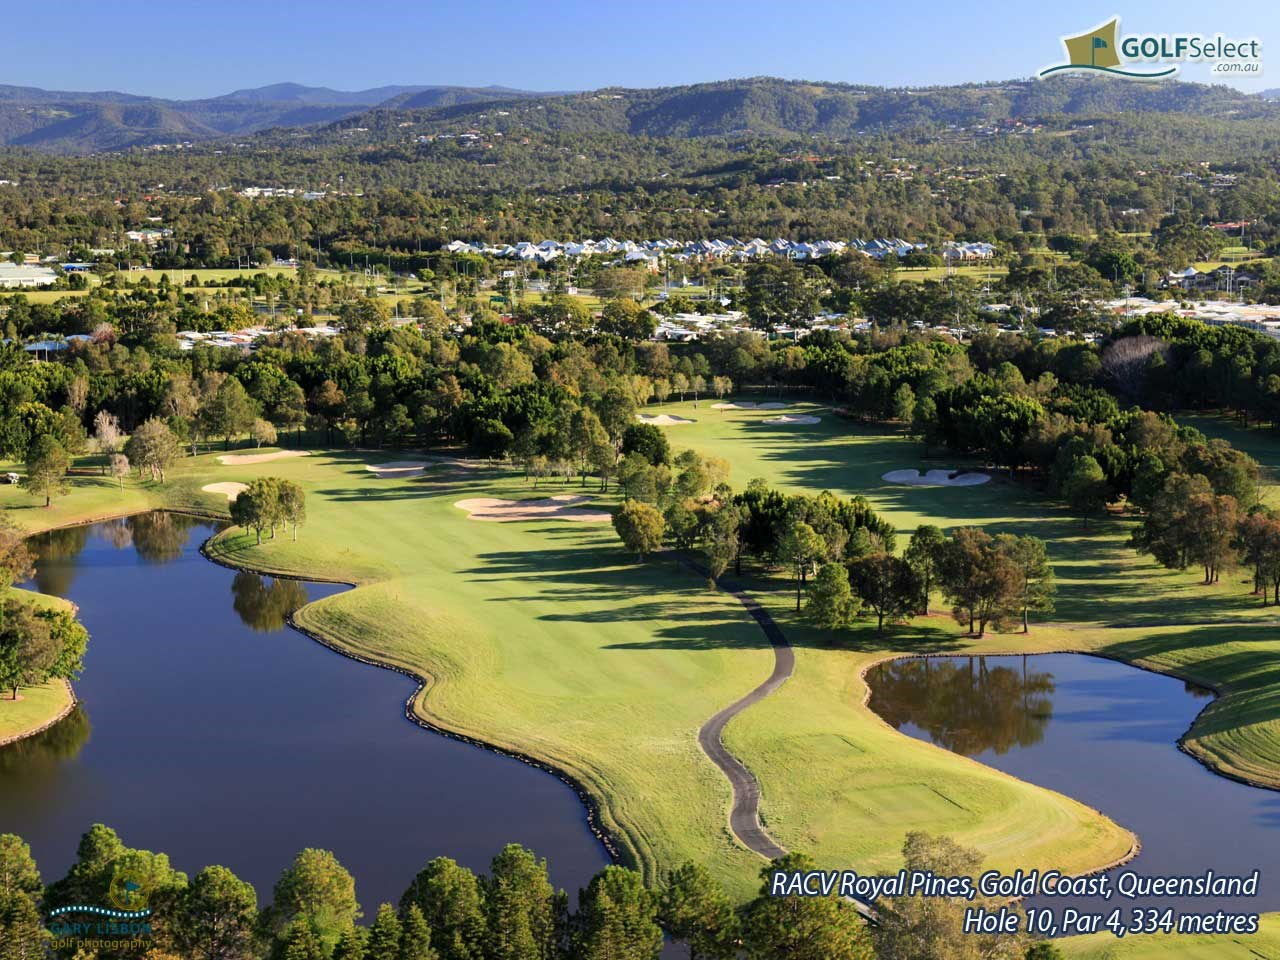 RACV Royal Pines Resort (Gold Course) Hole 10, Par 4, 338 metres